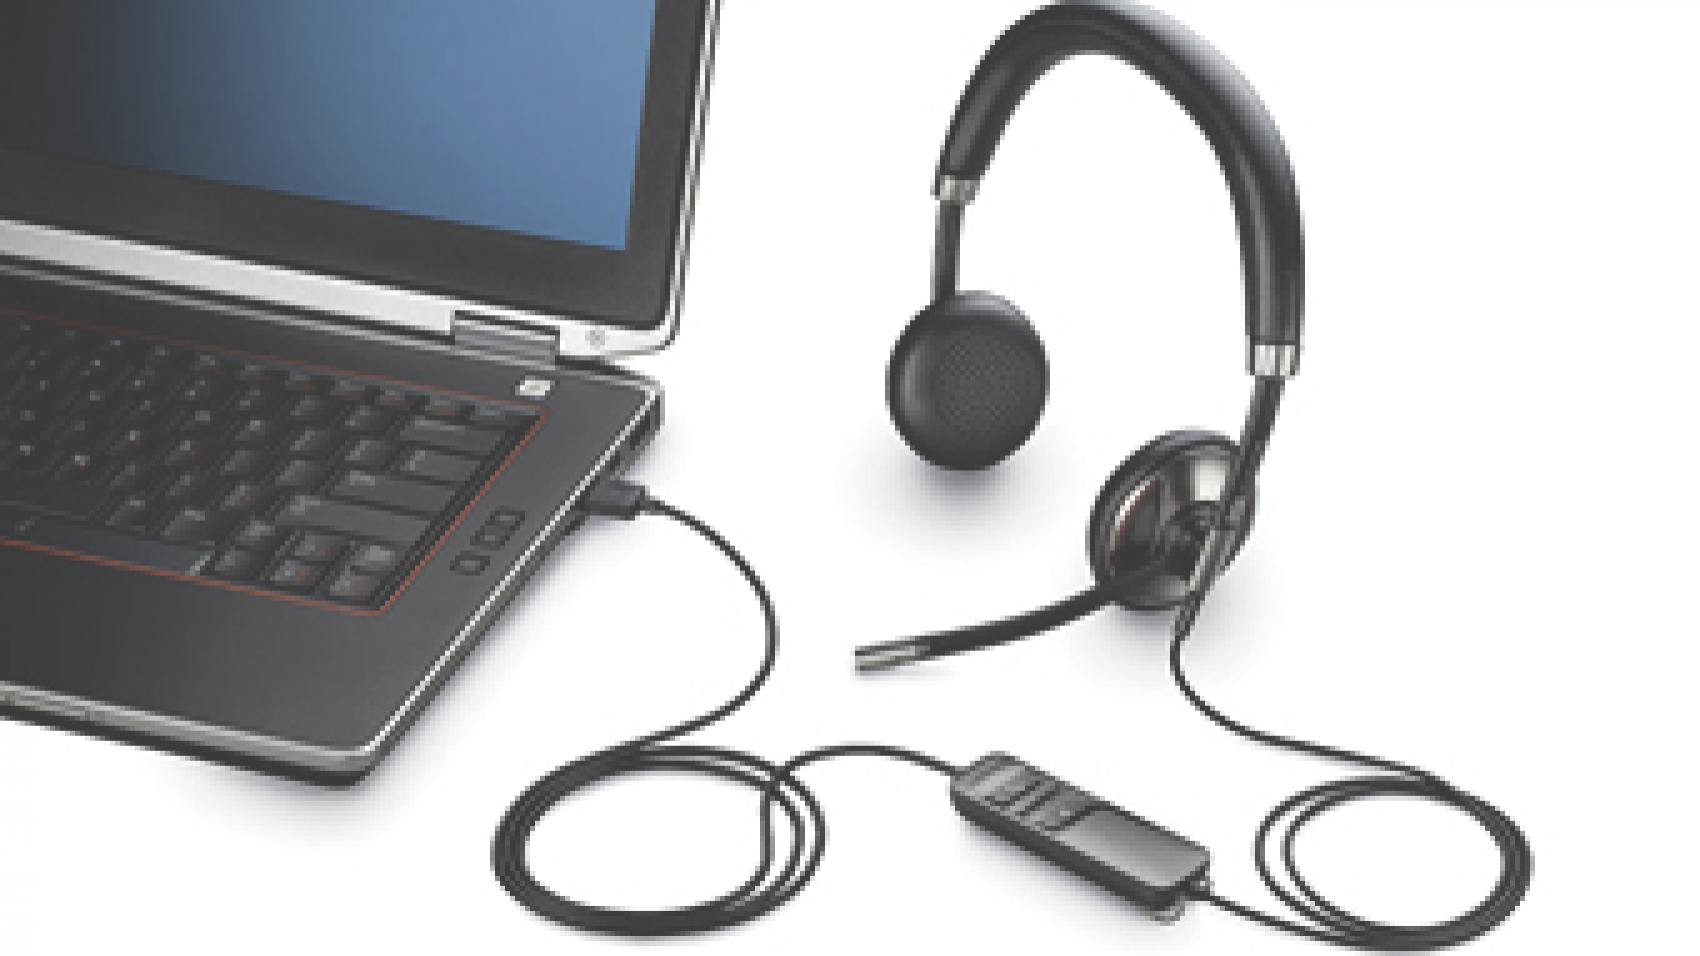 A Headset Connected to a Laptop